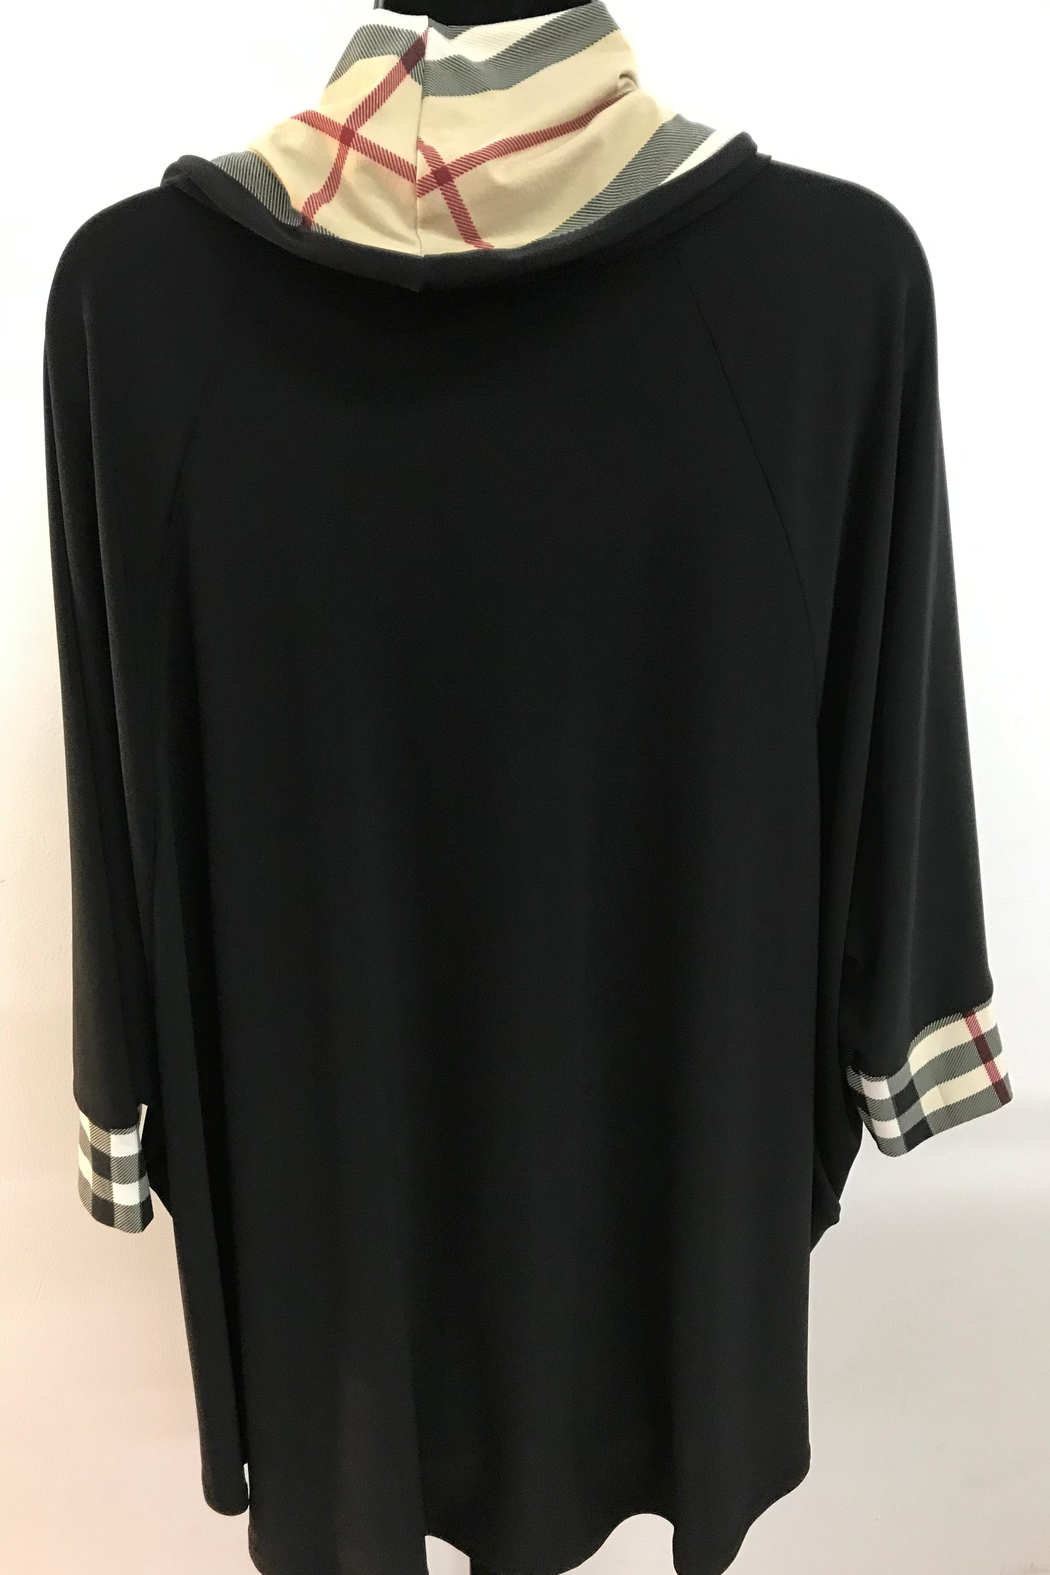 Michael Tyler Collections Black Tunic Top - Front Full Image